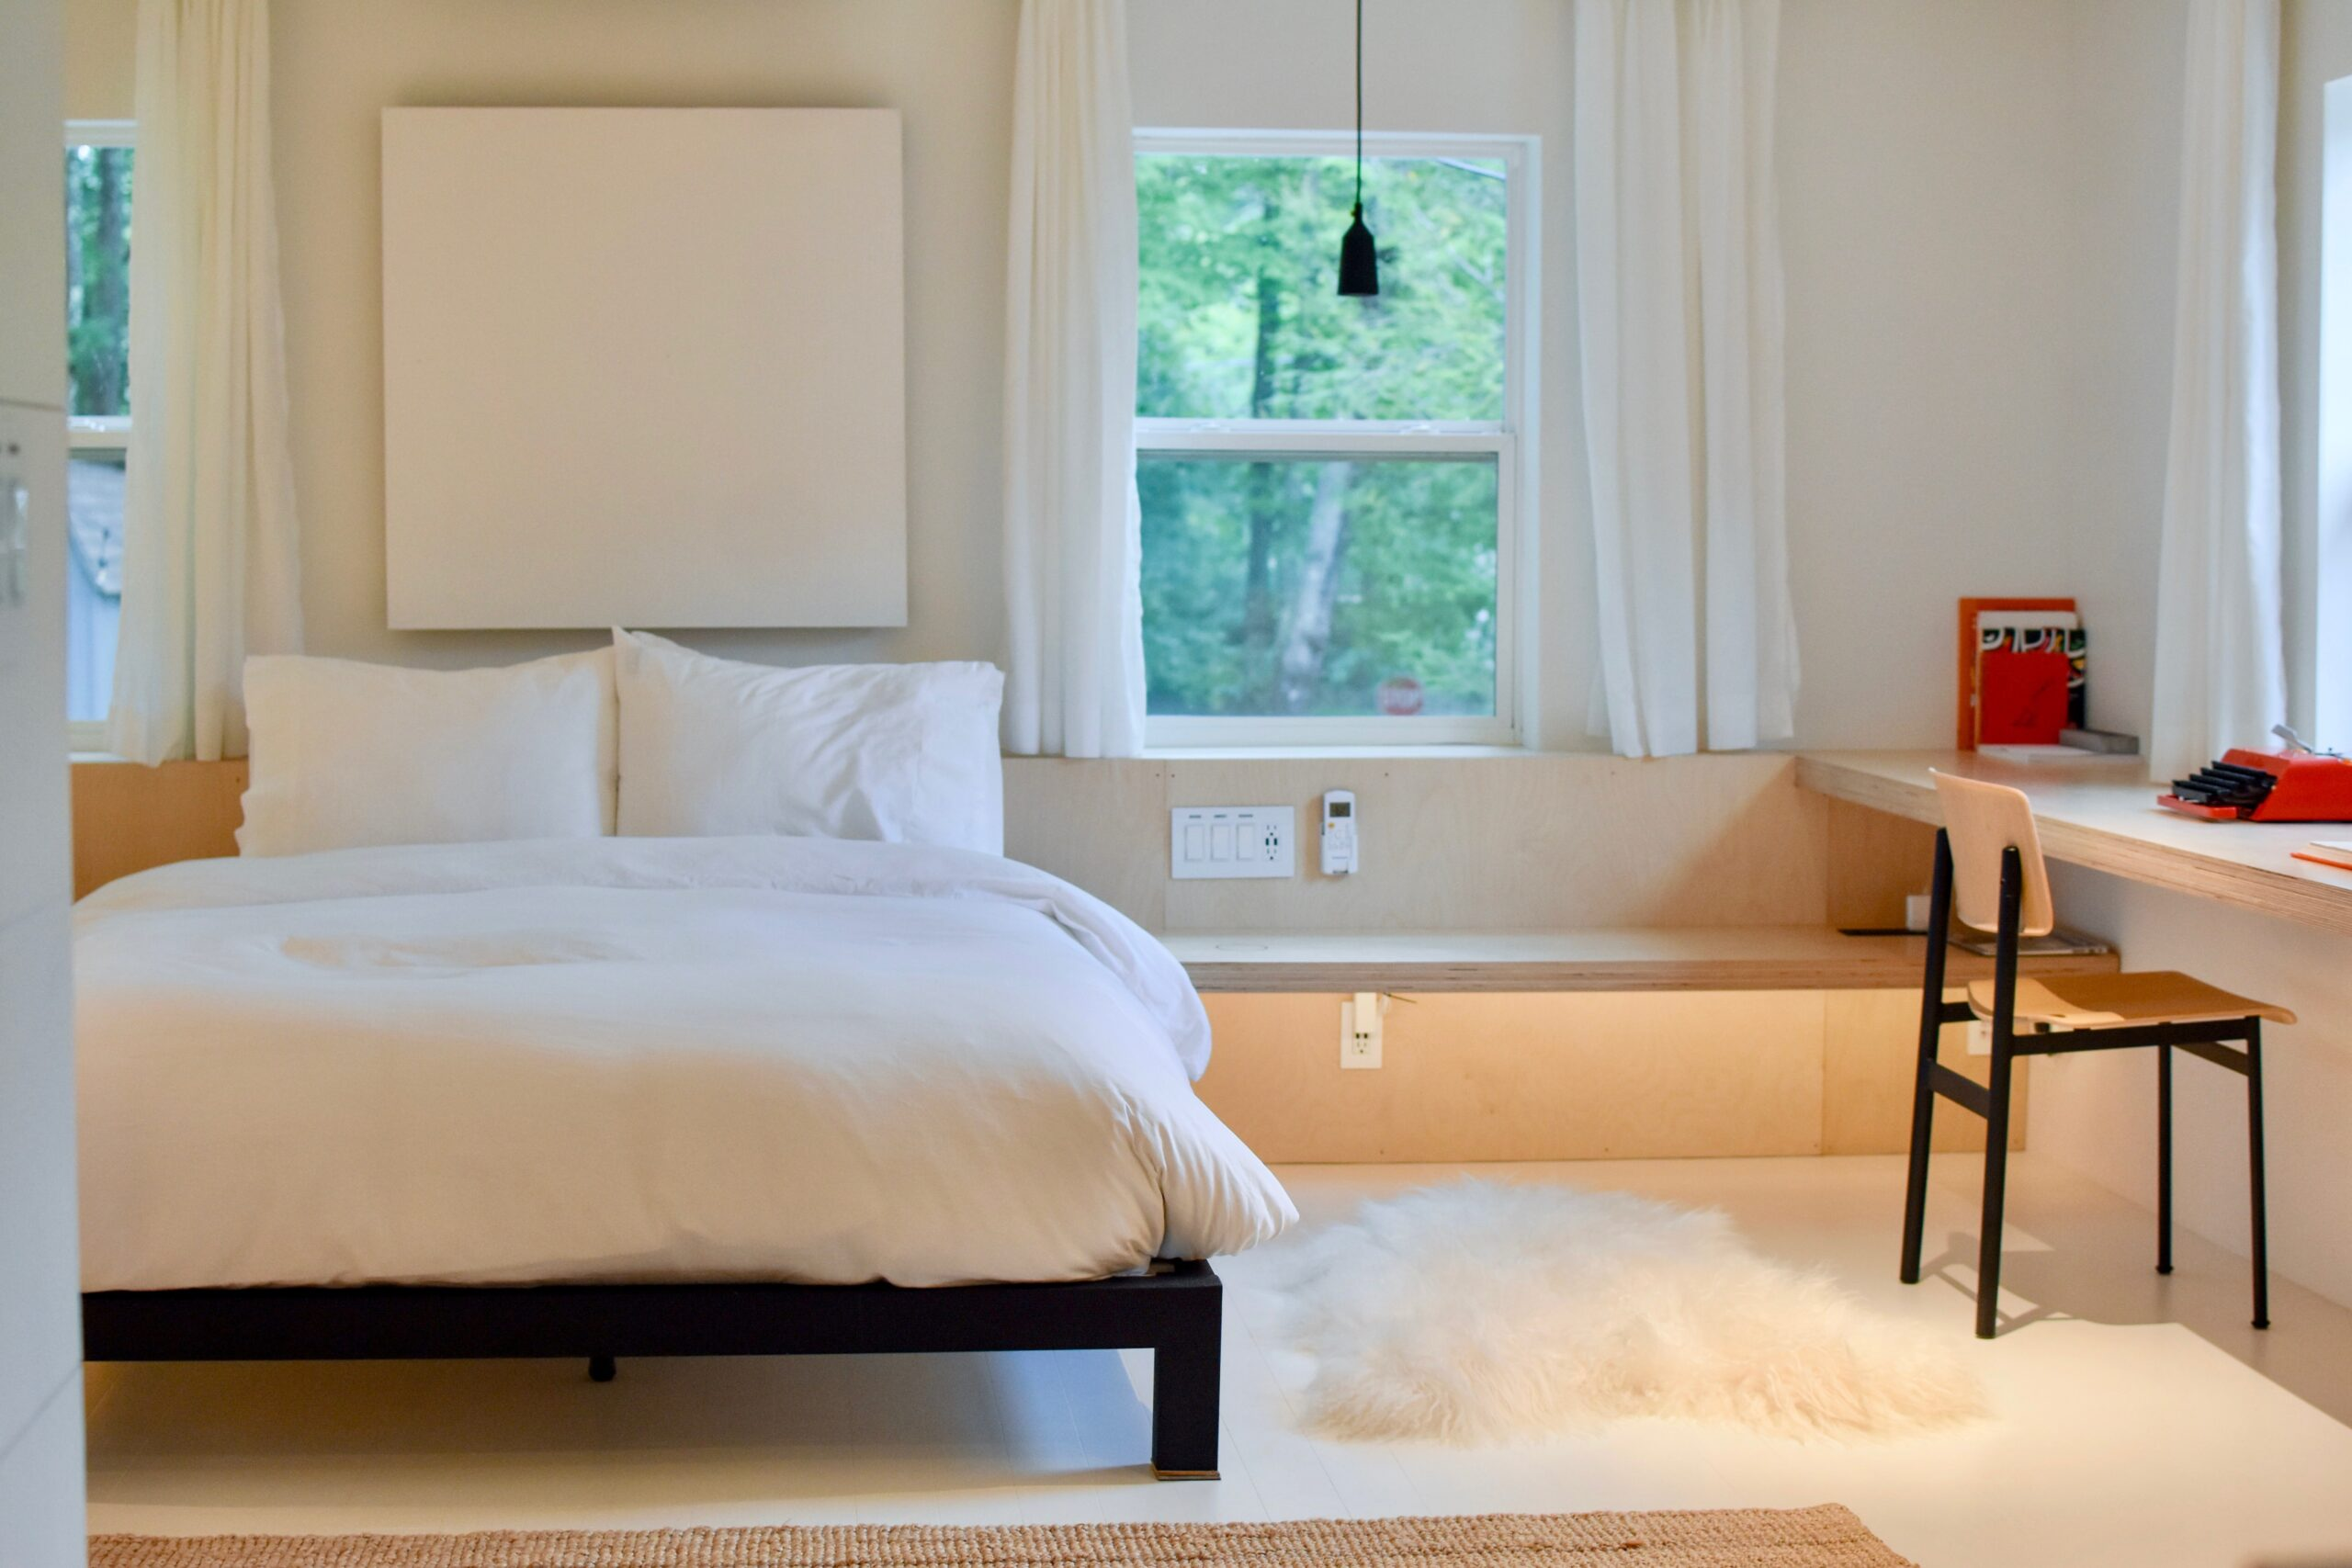 Example of a childs bedroom ready for an open house